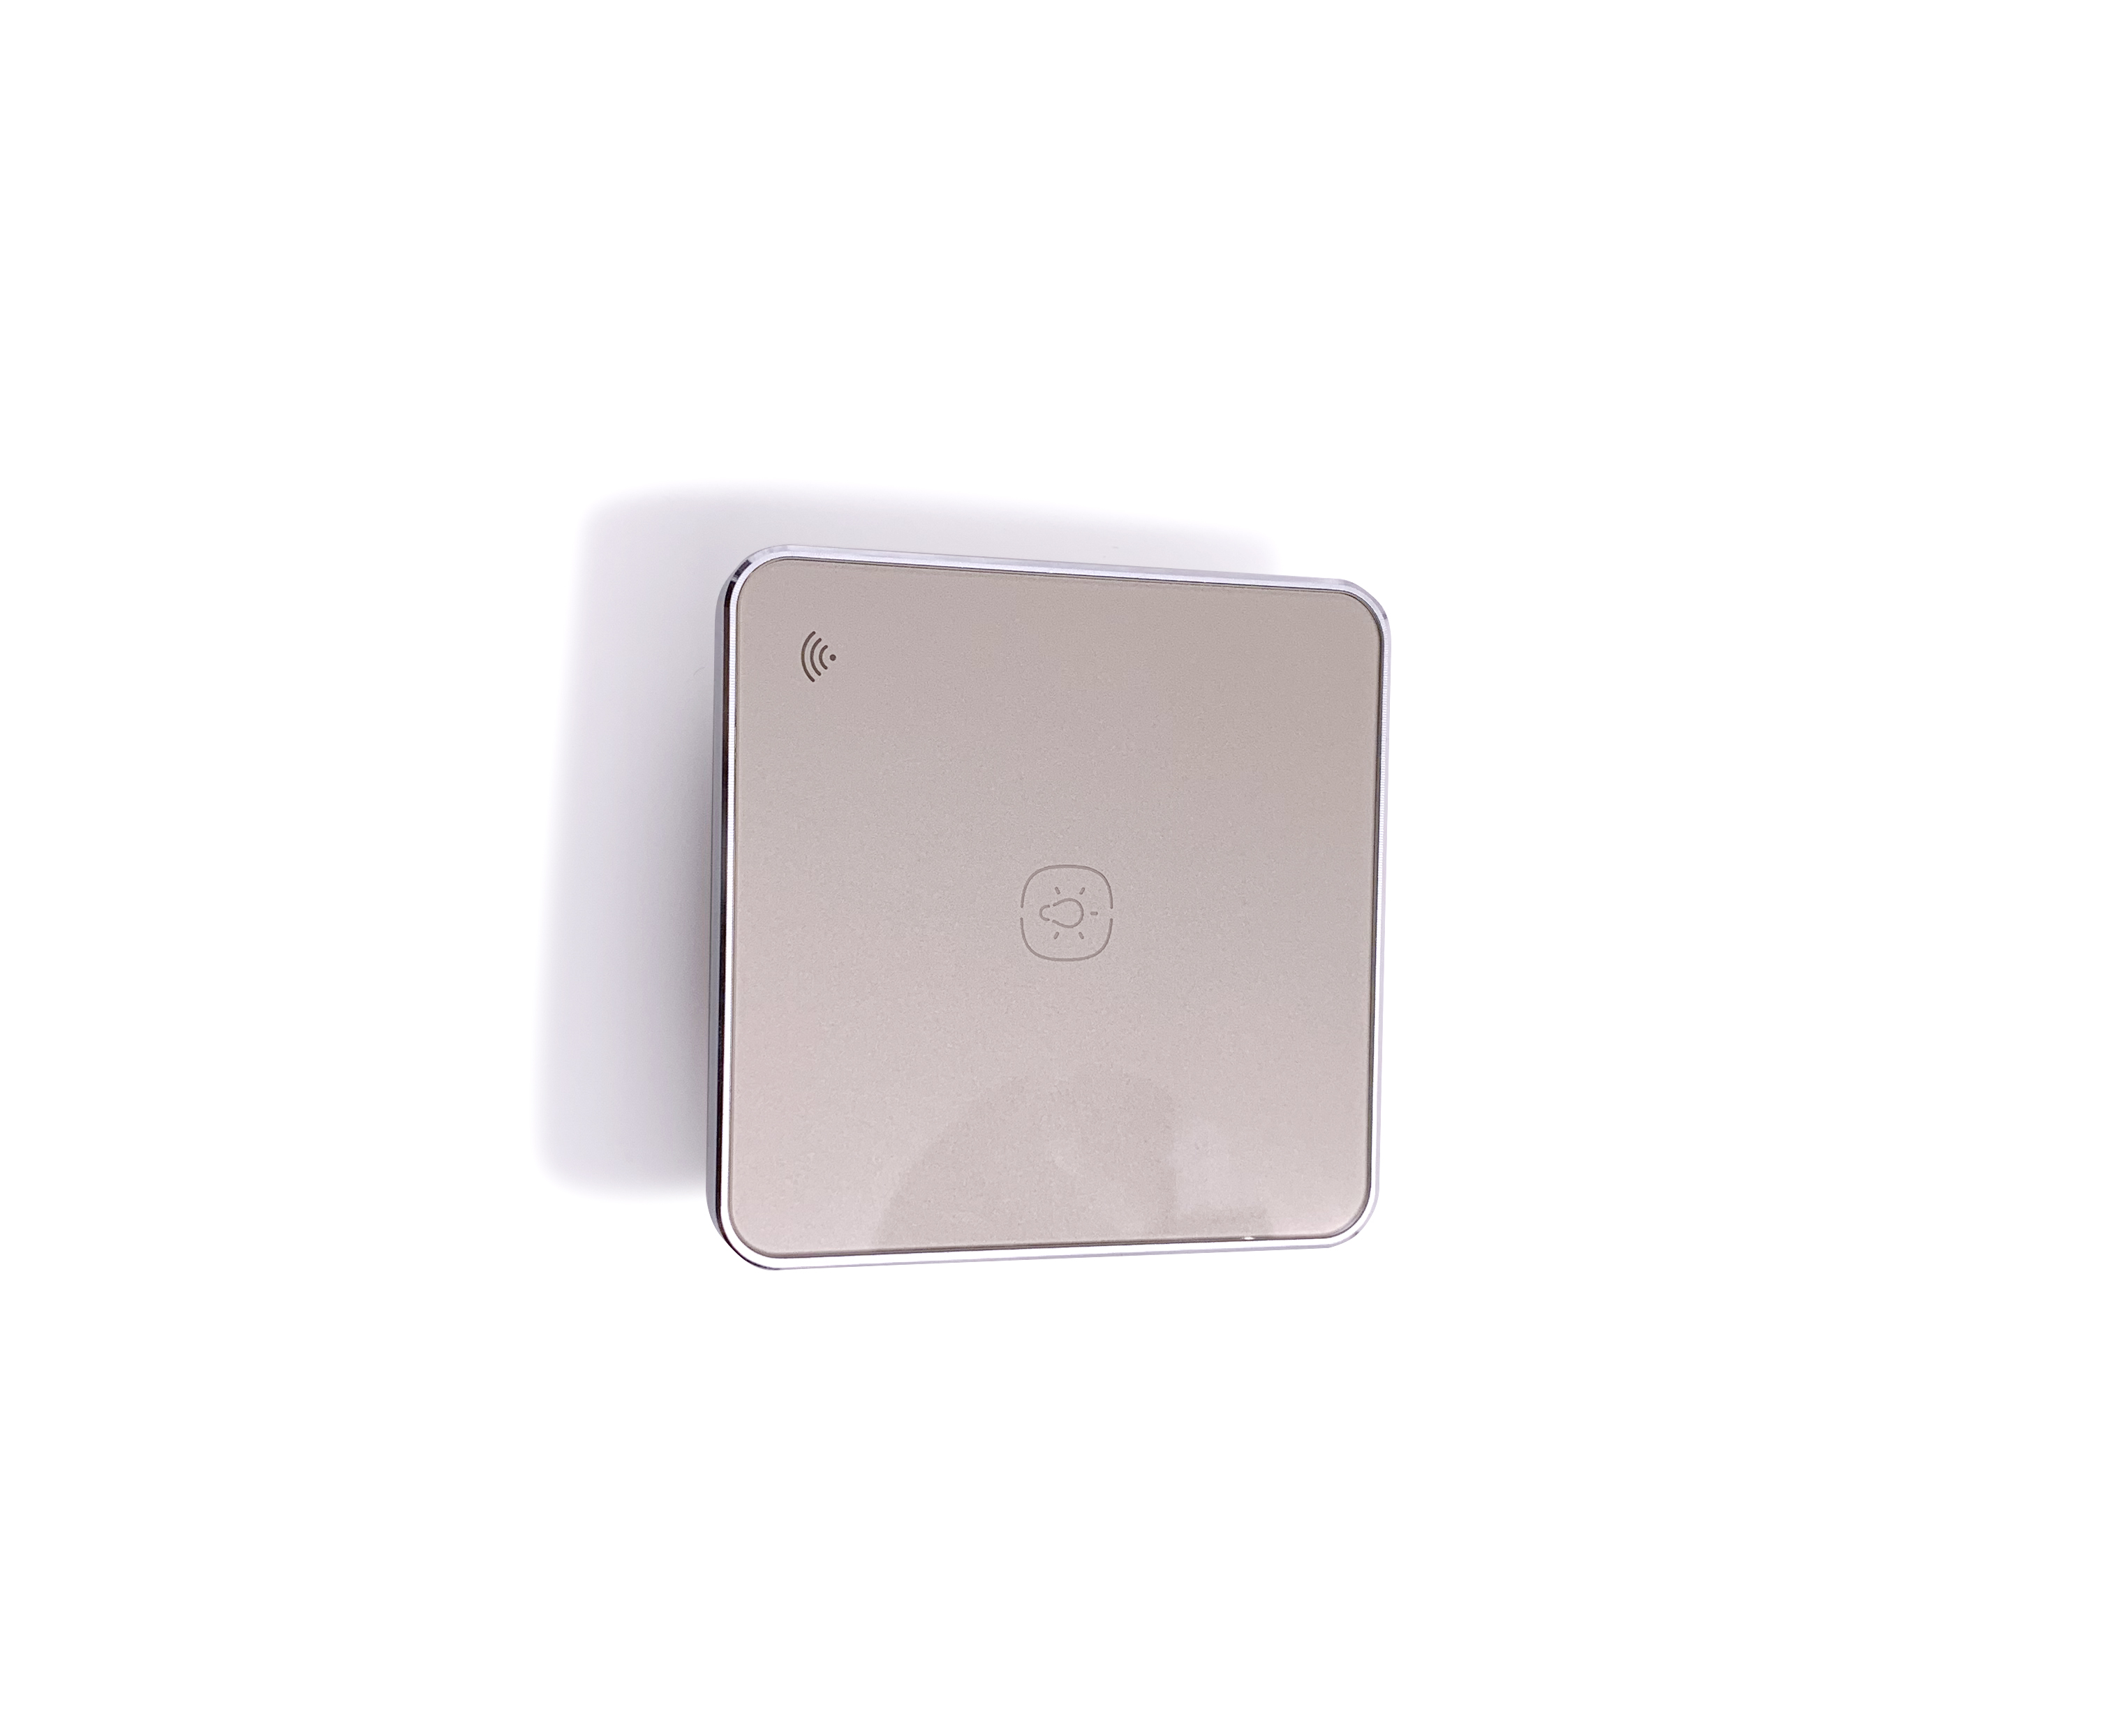 Able 13.56mhz White Hotel Mifare S50 Rfid Card Switch With Room Number And Check In Time Limit Function Energy Saver Saving Switch Access Control Access Control Accessories